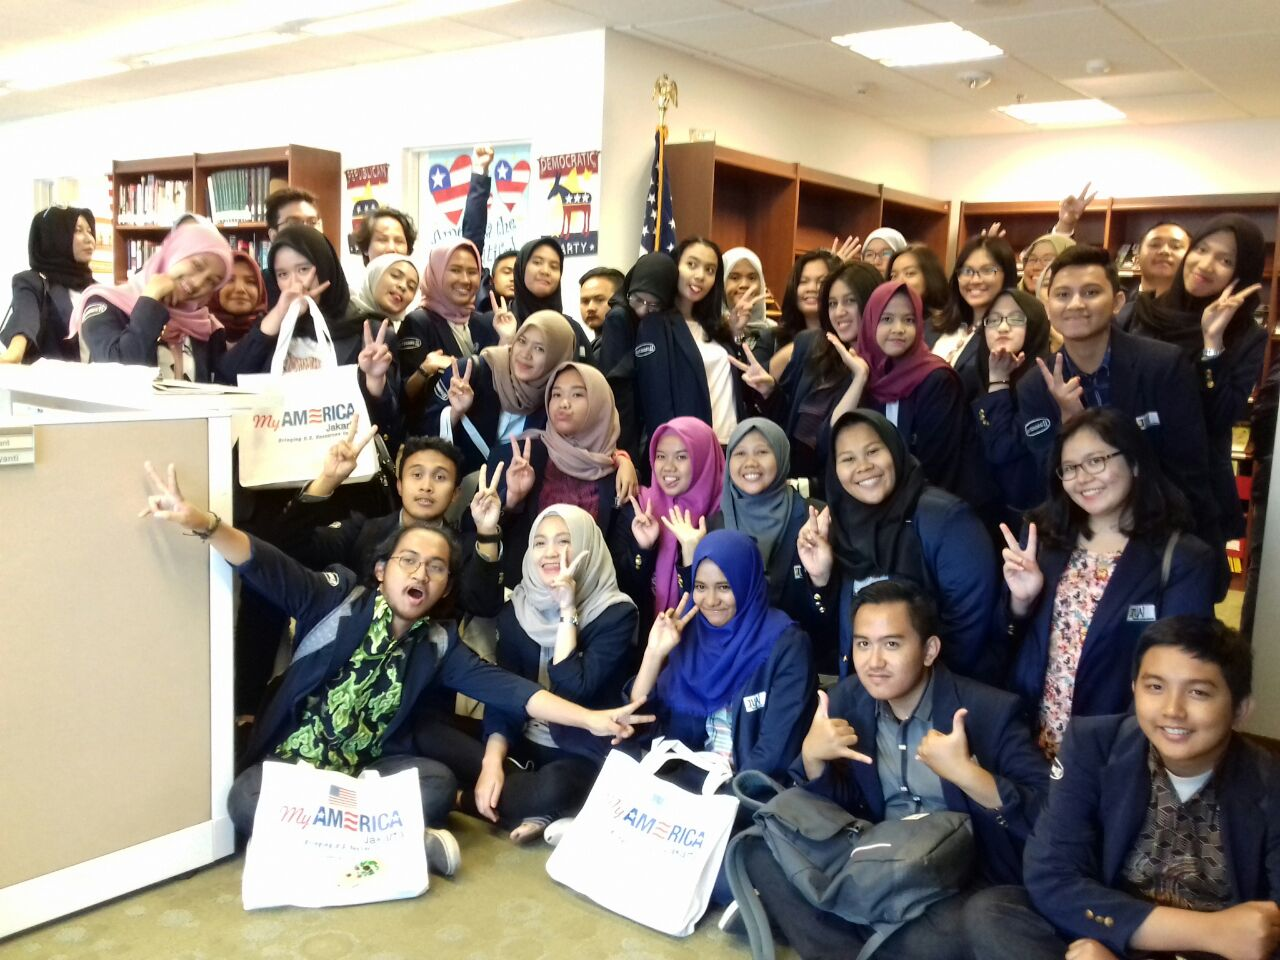 International Relation Major Of UAI Visits The US Embassy With Critical Views